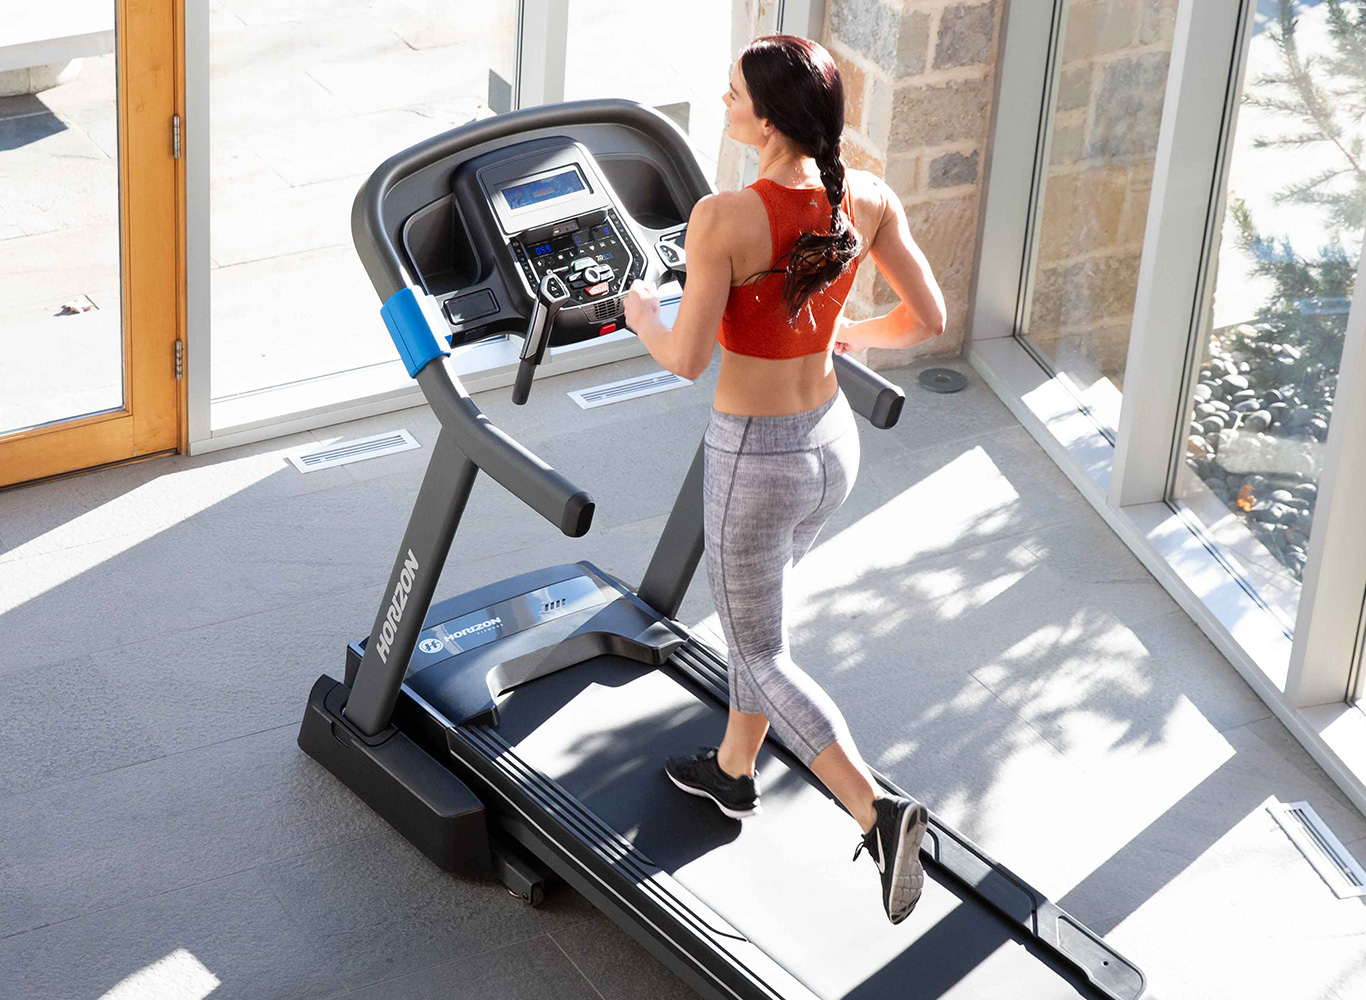 Horizon Cardio Equipment